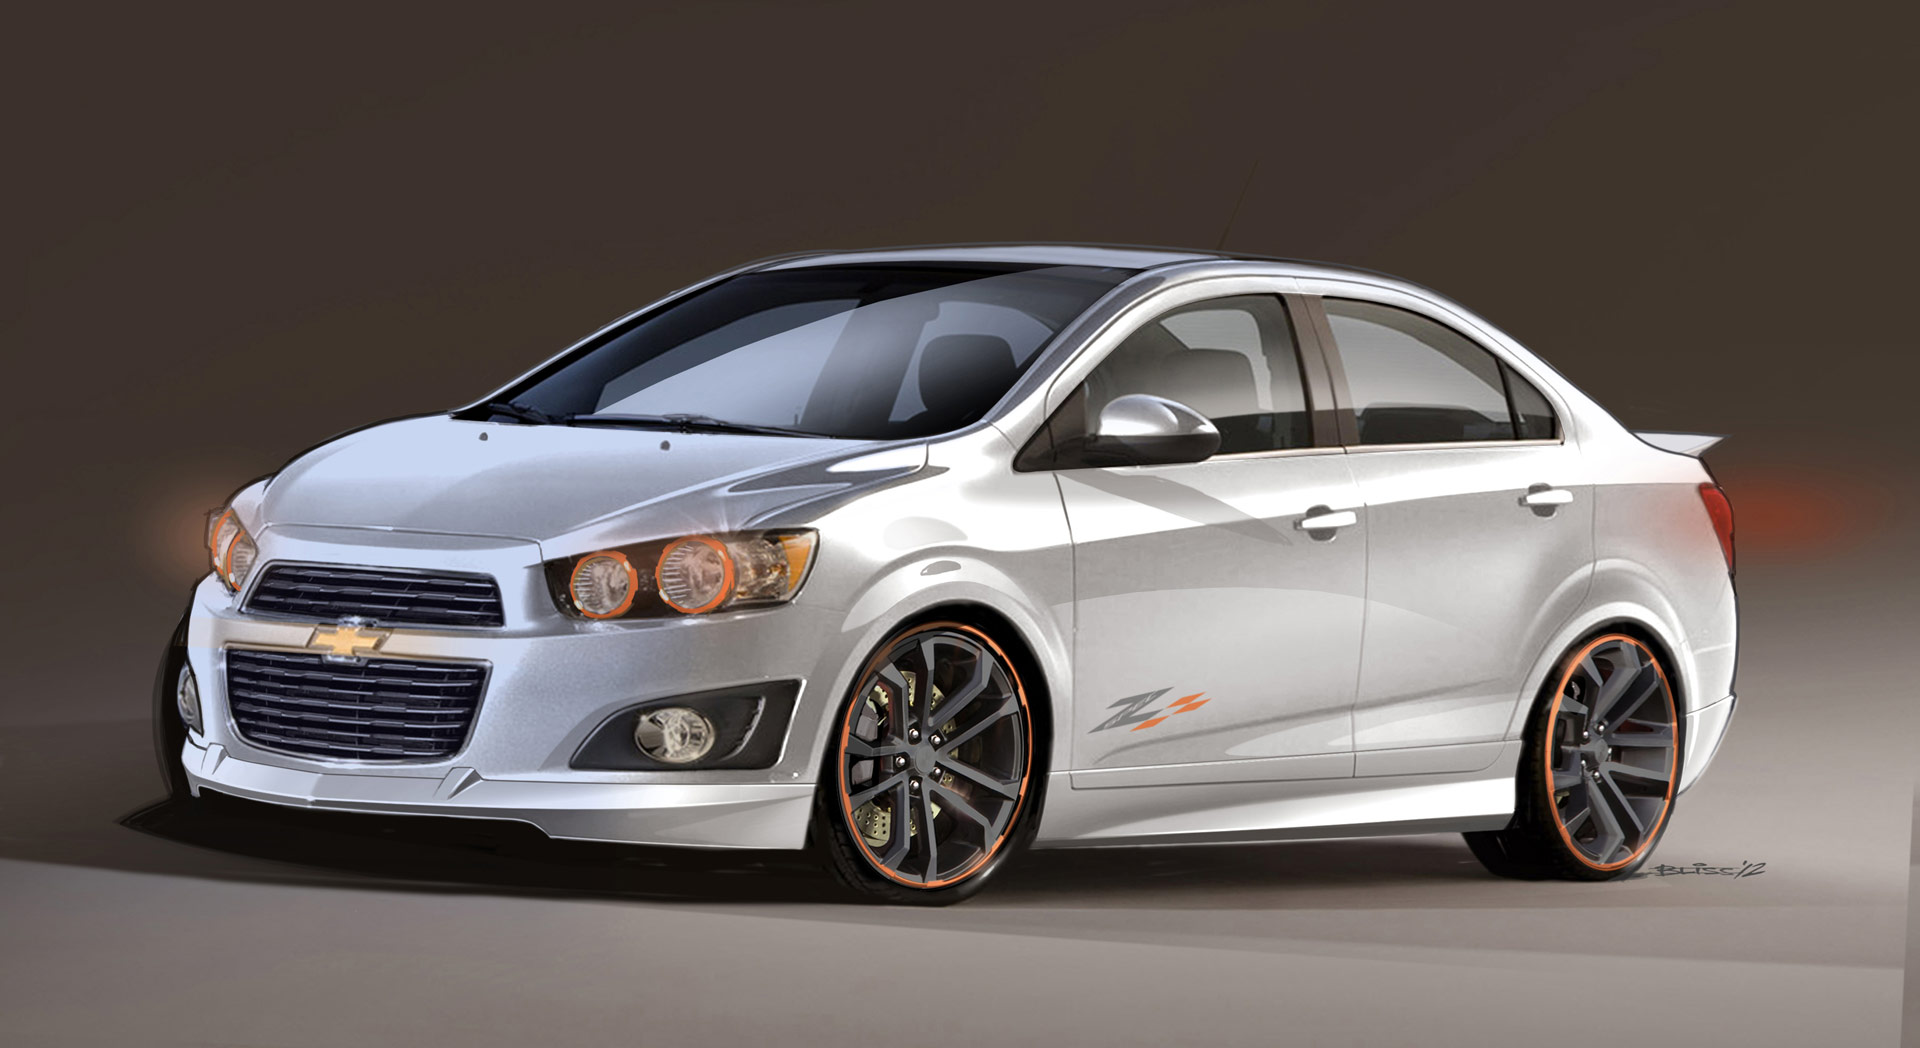 2018 Chevrolet Sonic Price >> 2013 Chevrolet Sonic Z-Spec 2.5 Concept News and Information